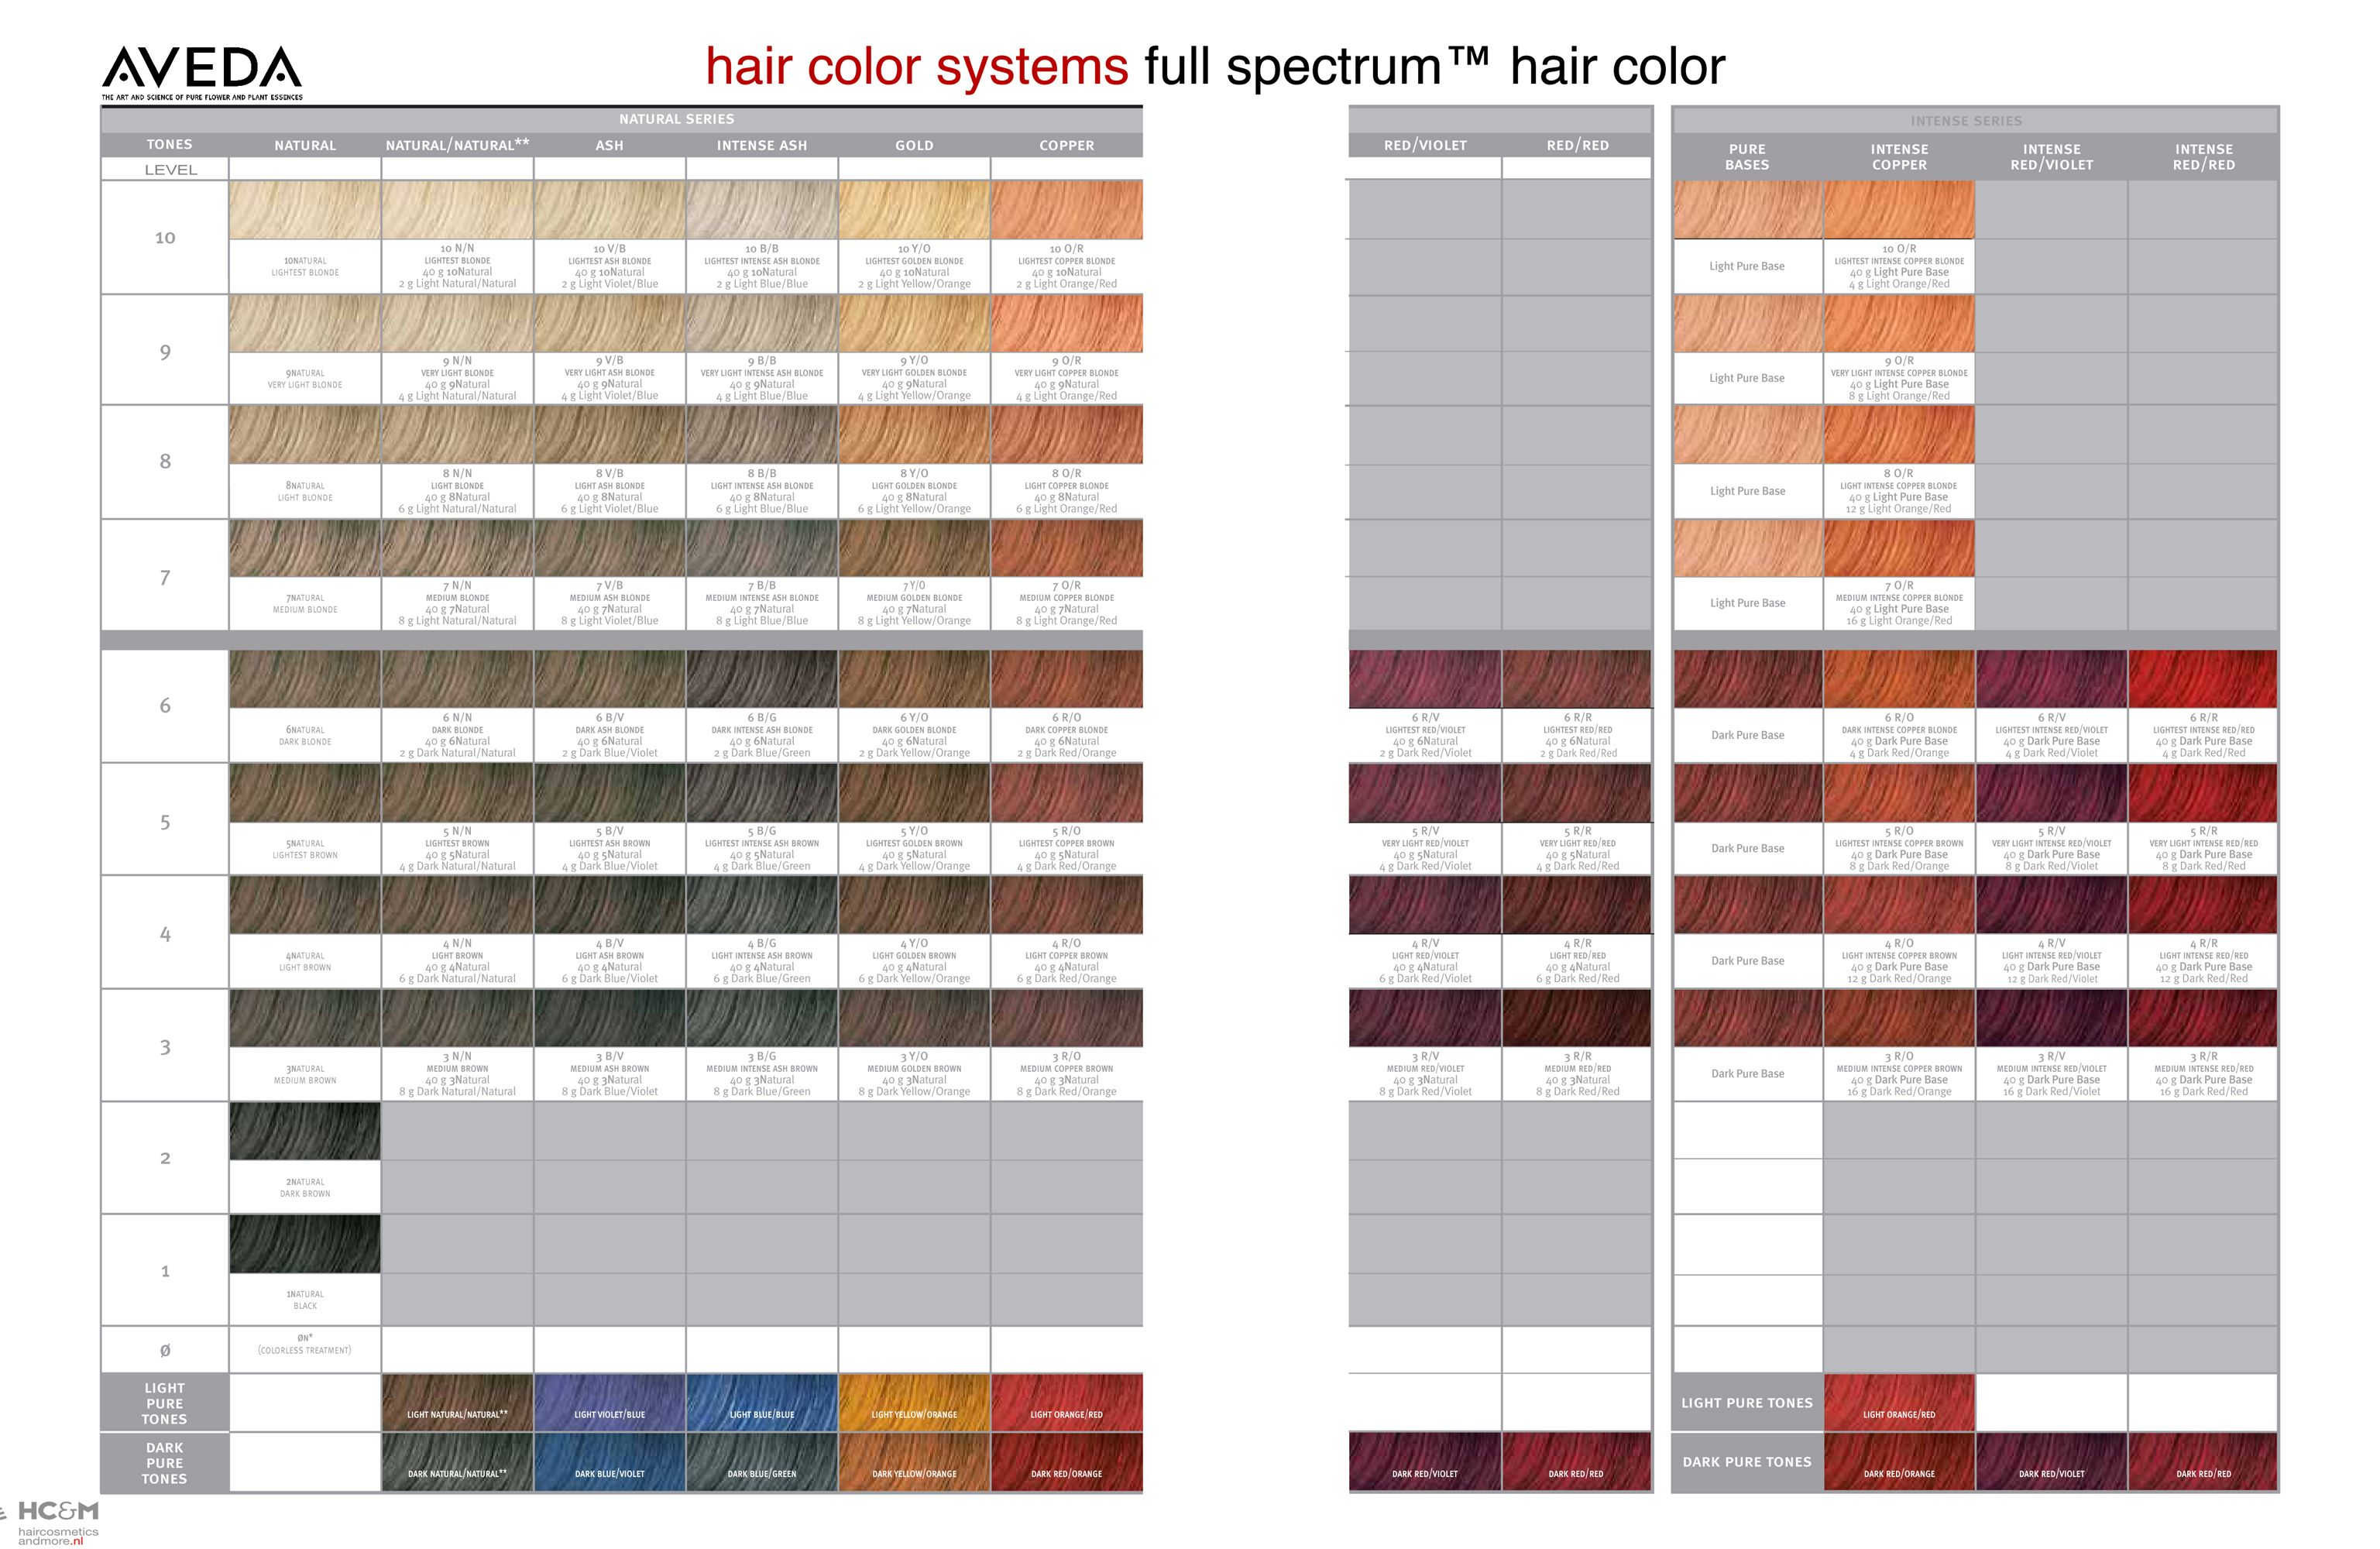 Aveda Hair Color System Full Spectrum Hair Color Chart Aveda Hair Color Aveda Hair Hair Color Chart